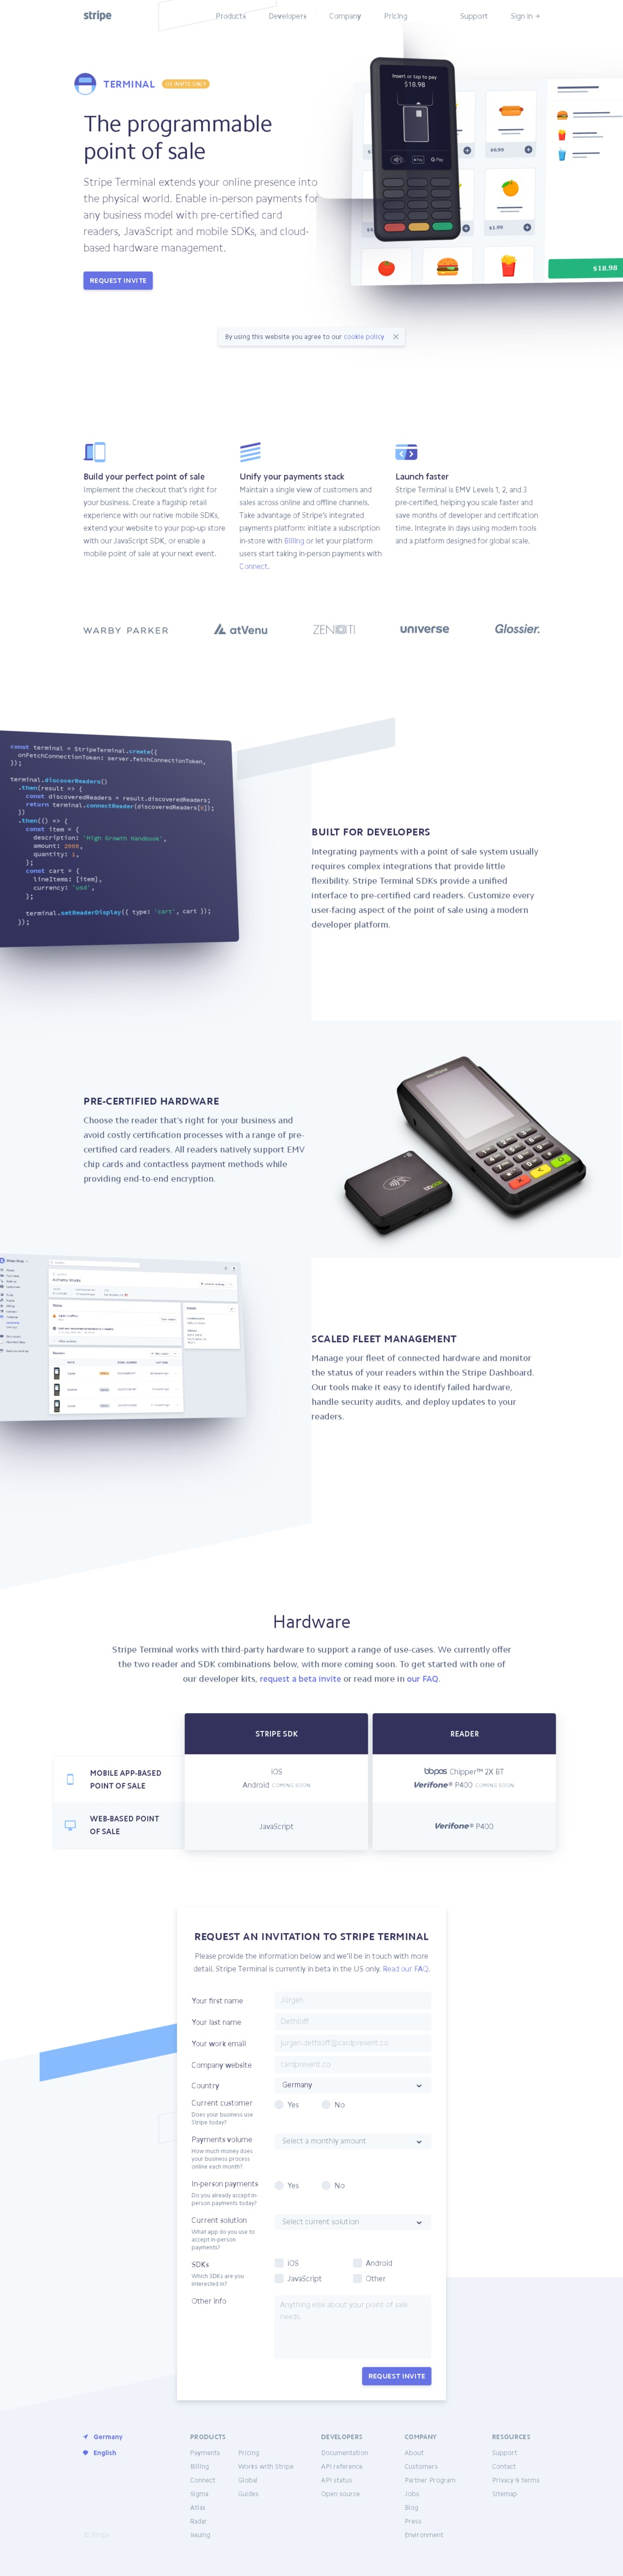 Stripe Terminal: The programmable point of sale